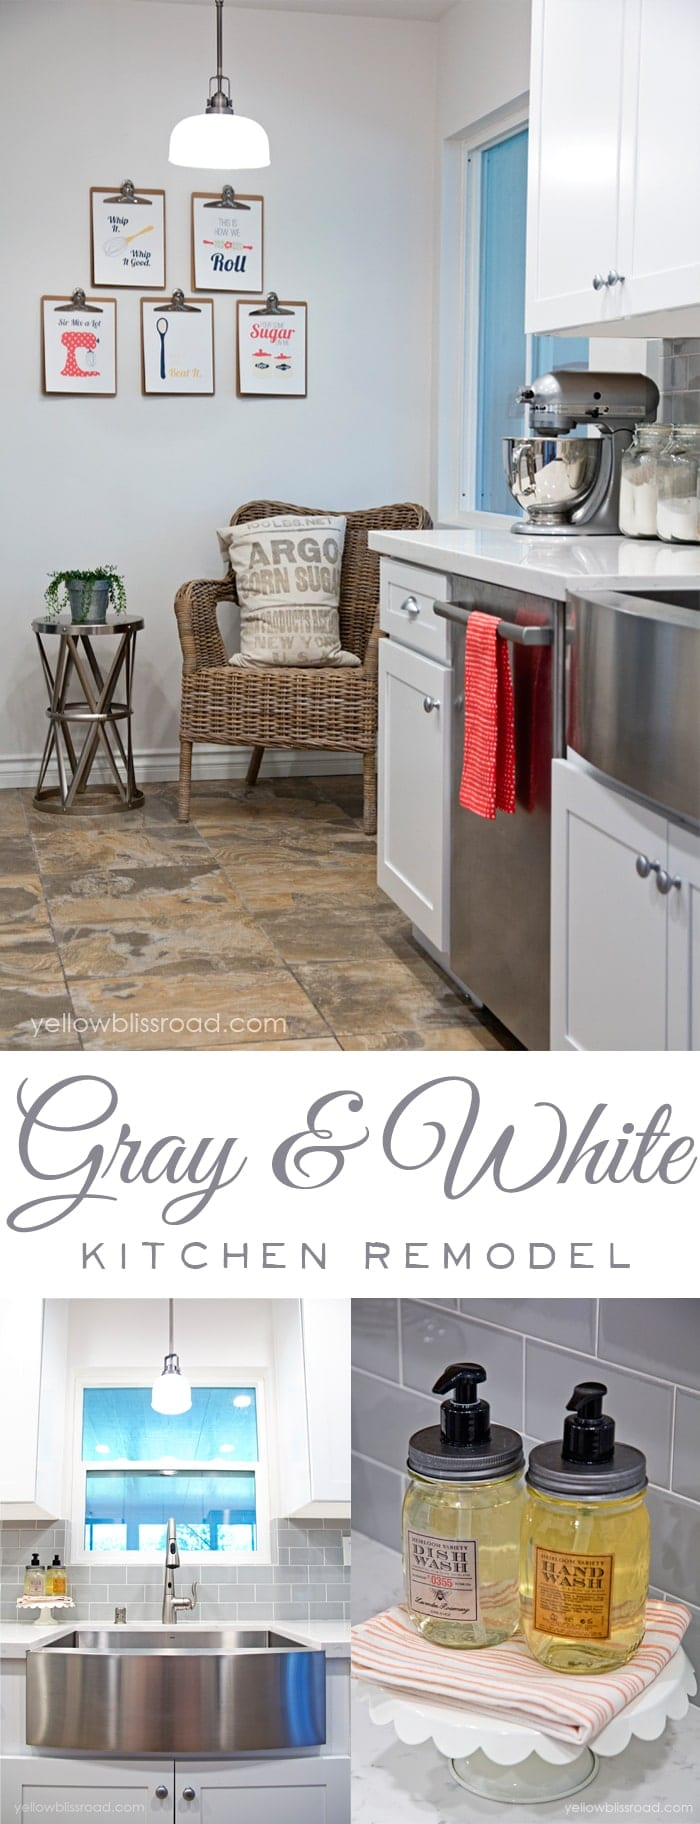 Gray and White Kitchen Remodel